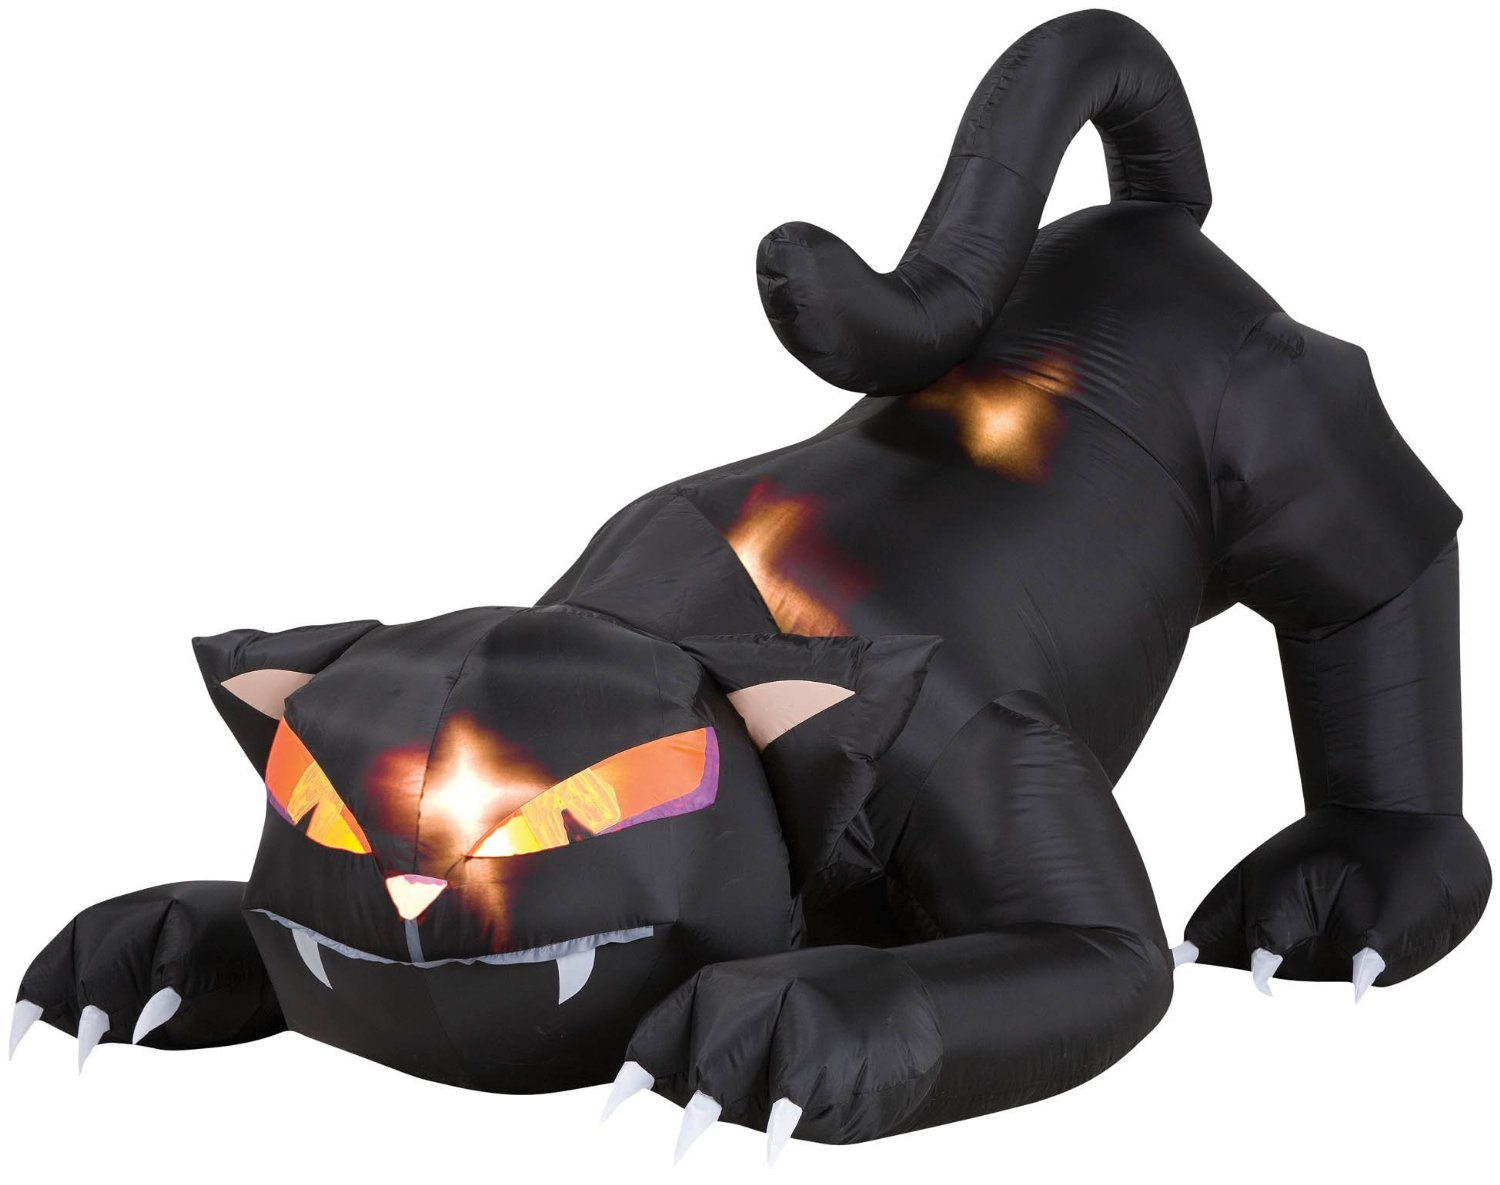 Crouched Inflatable Black Cat Halloween Display